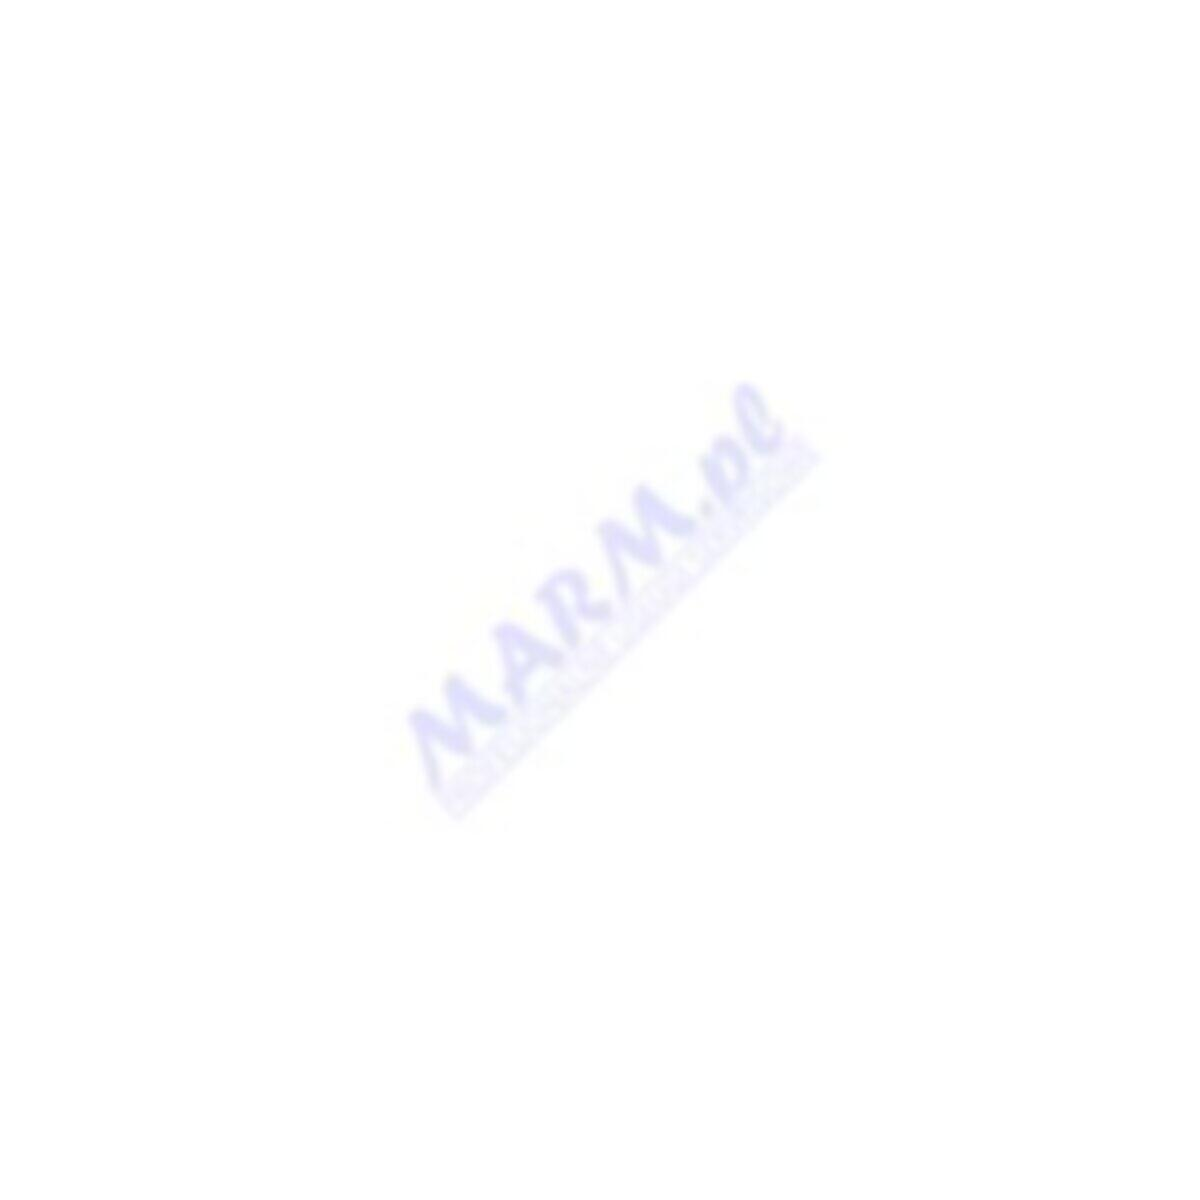 LOWER FILTER CASE FILTER B0653153 RICOH